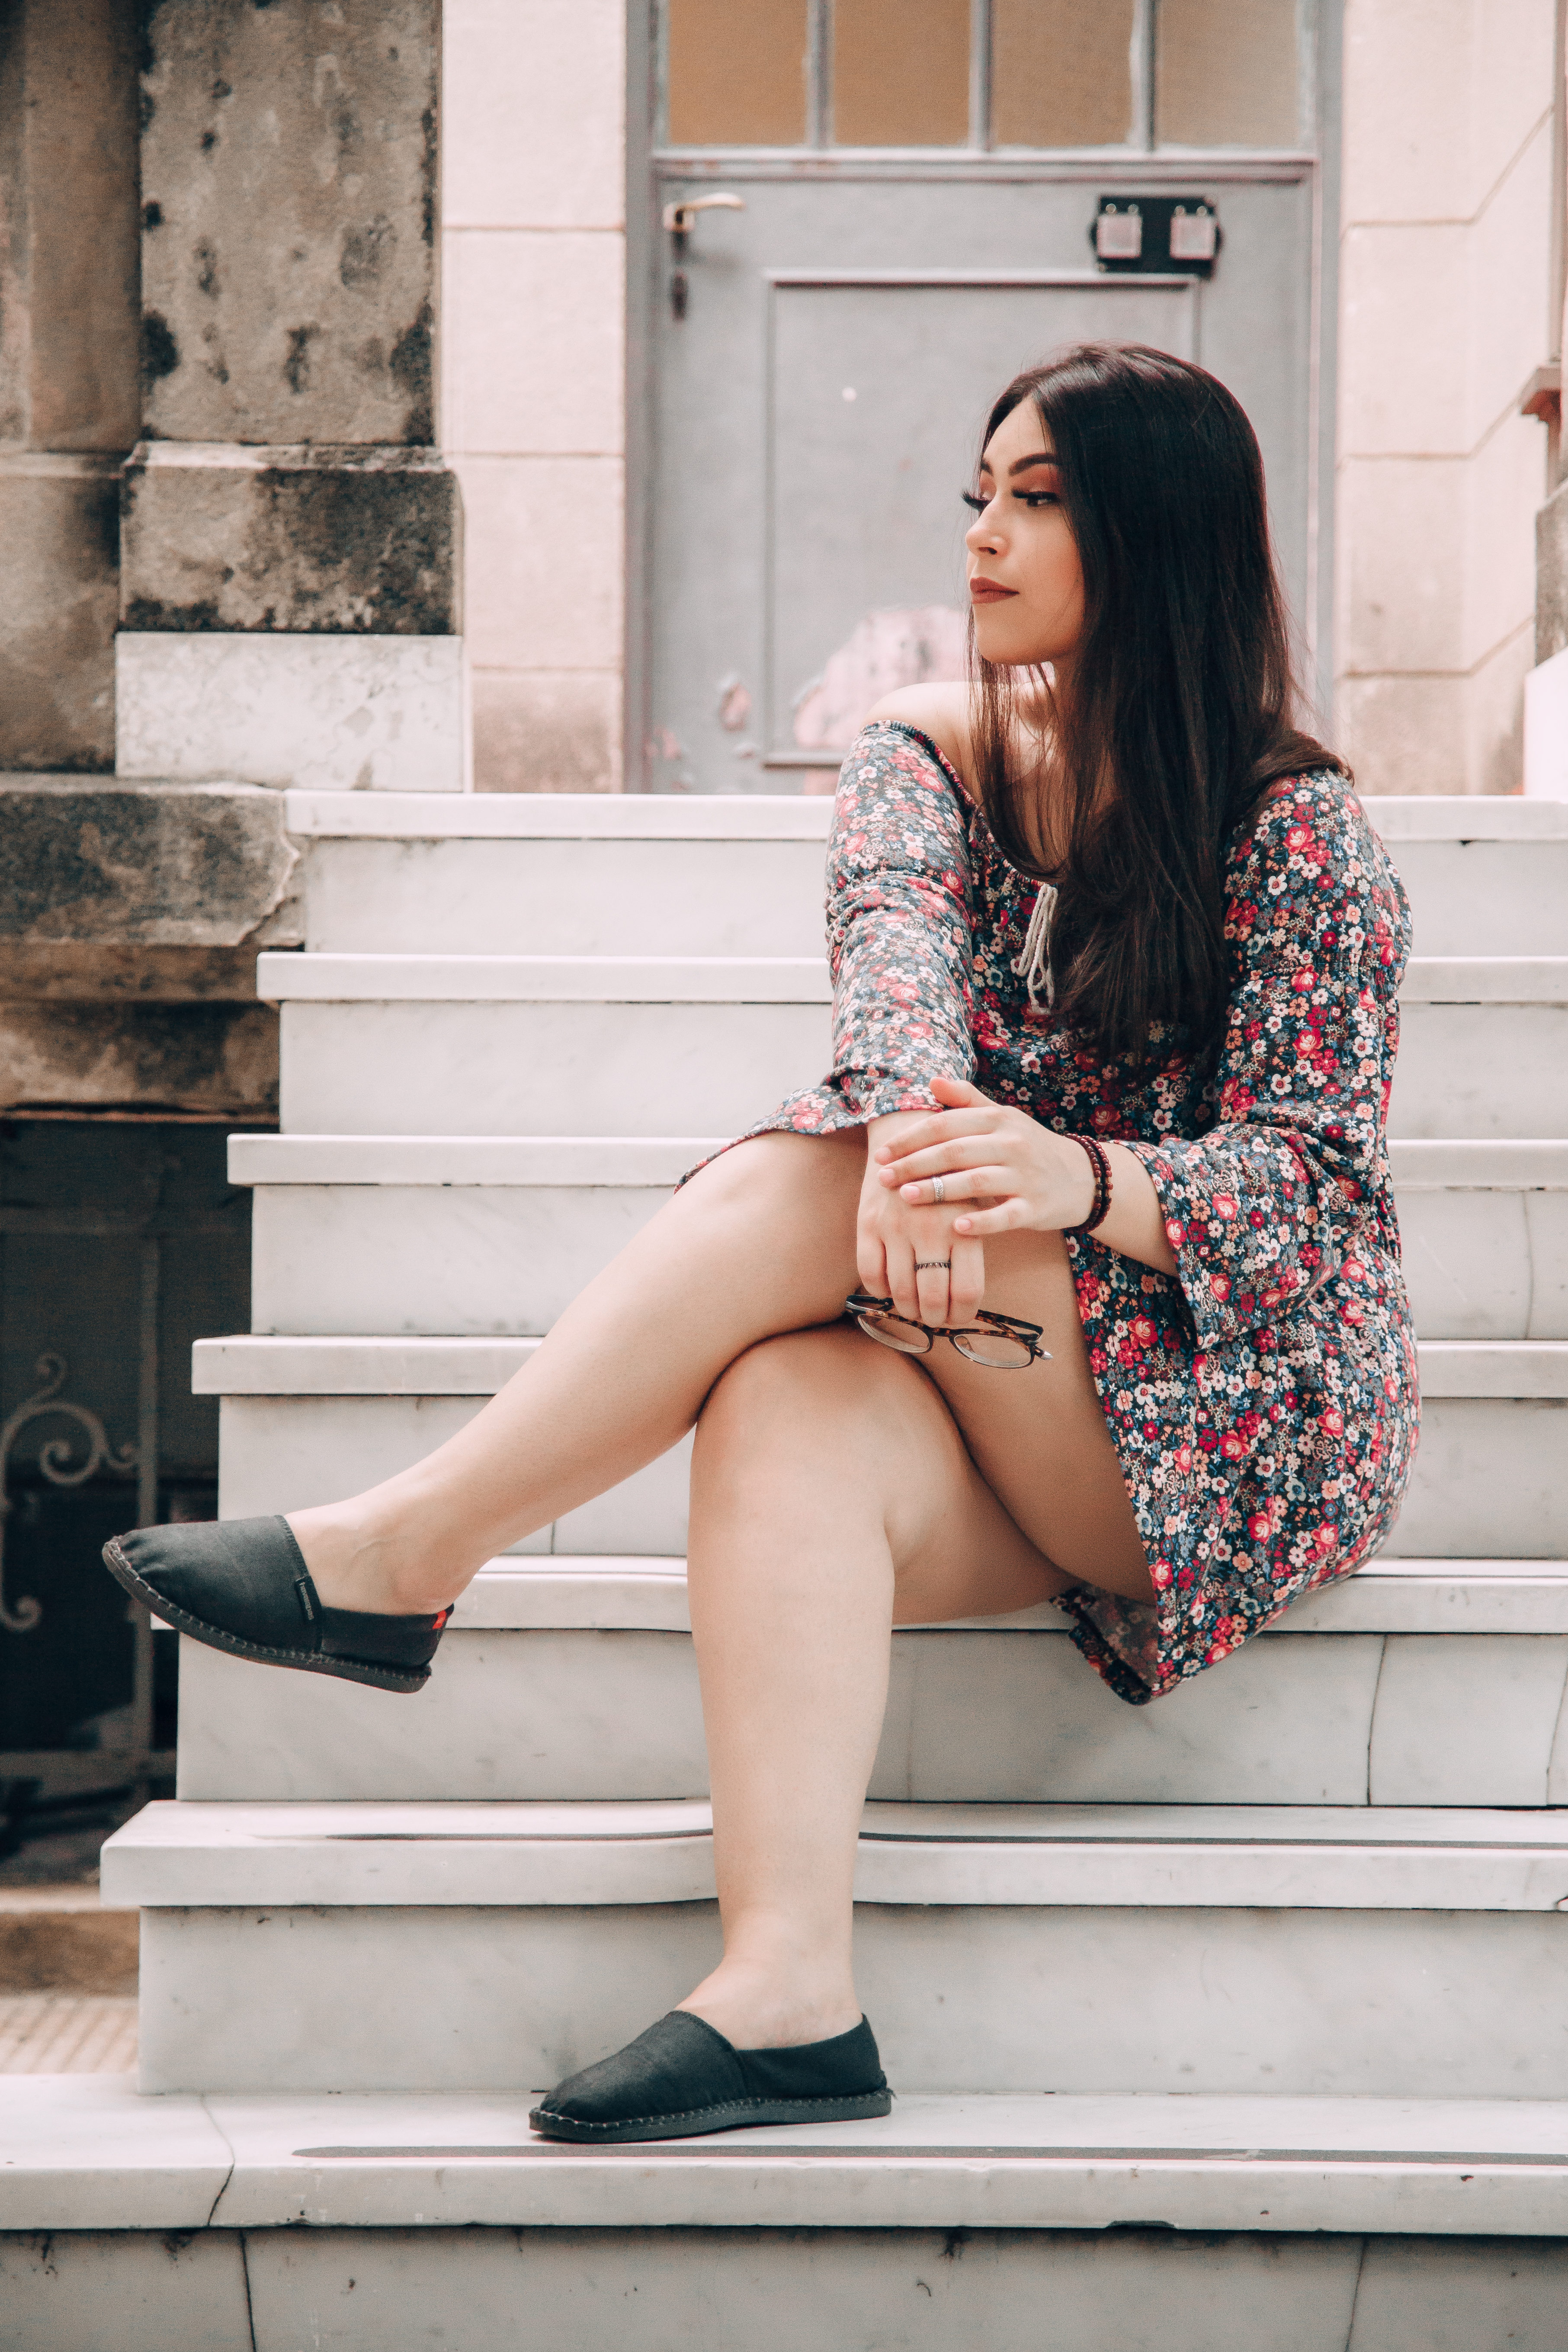 Beautiful woman in a floral dress on white stairs